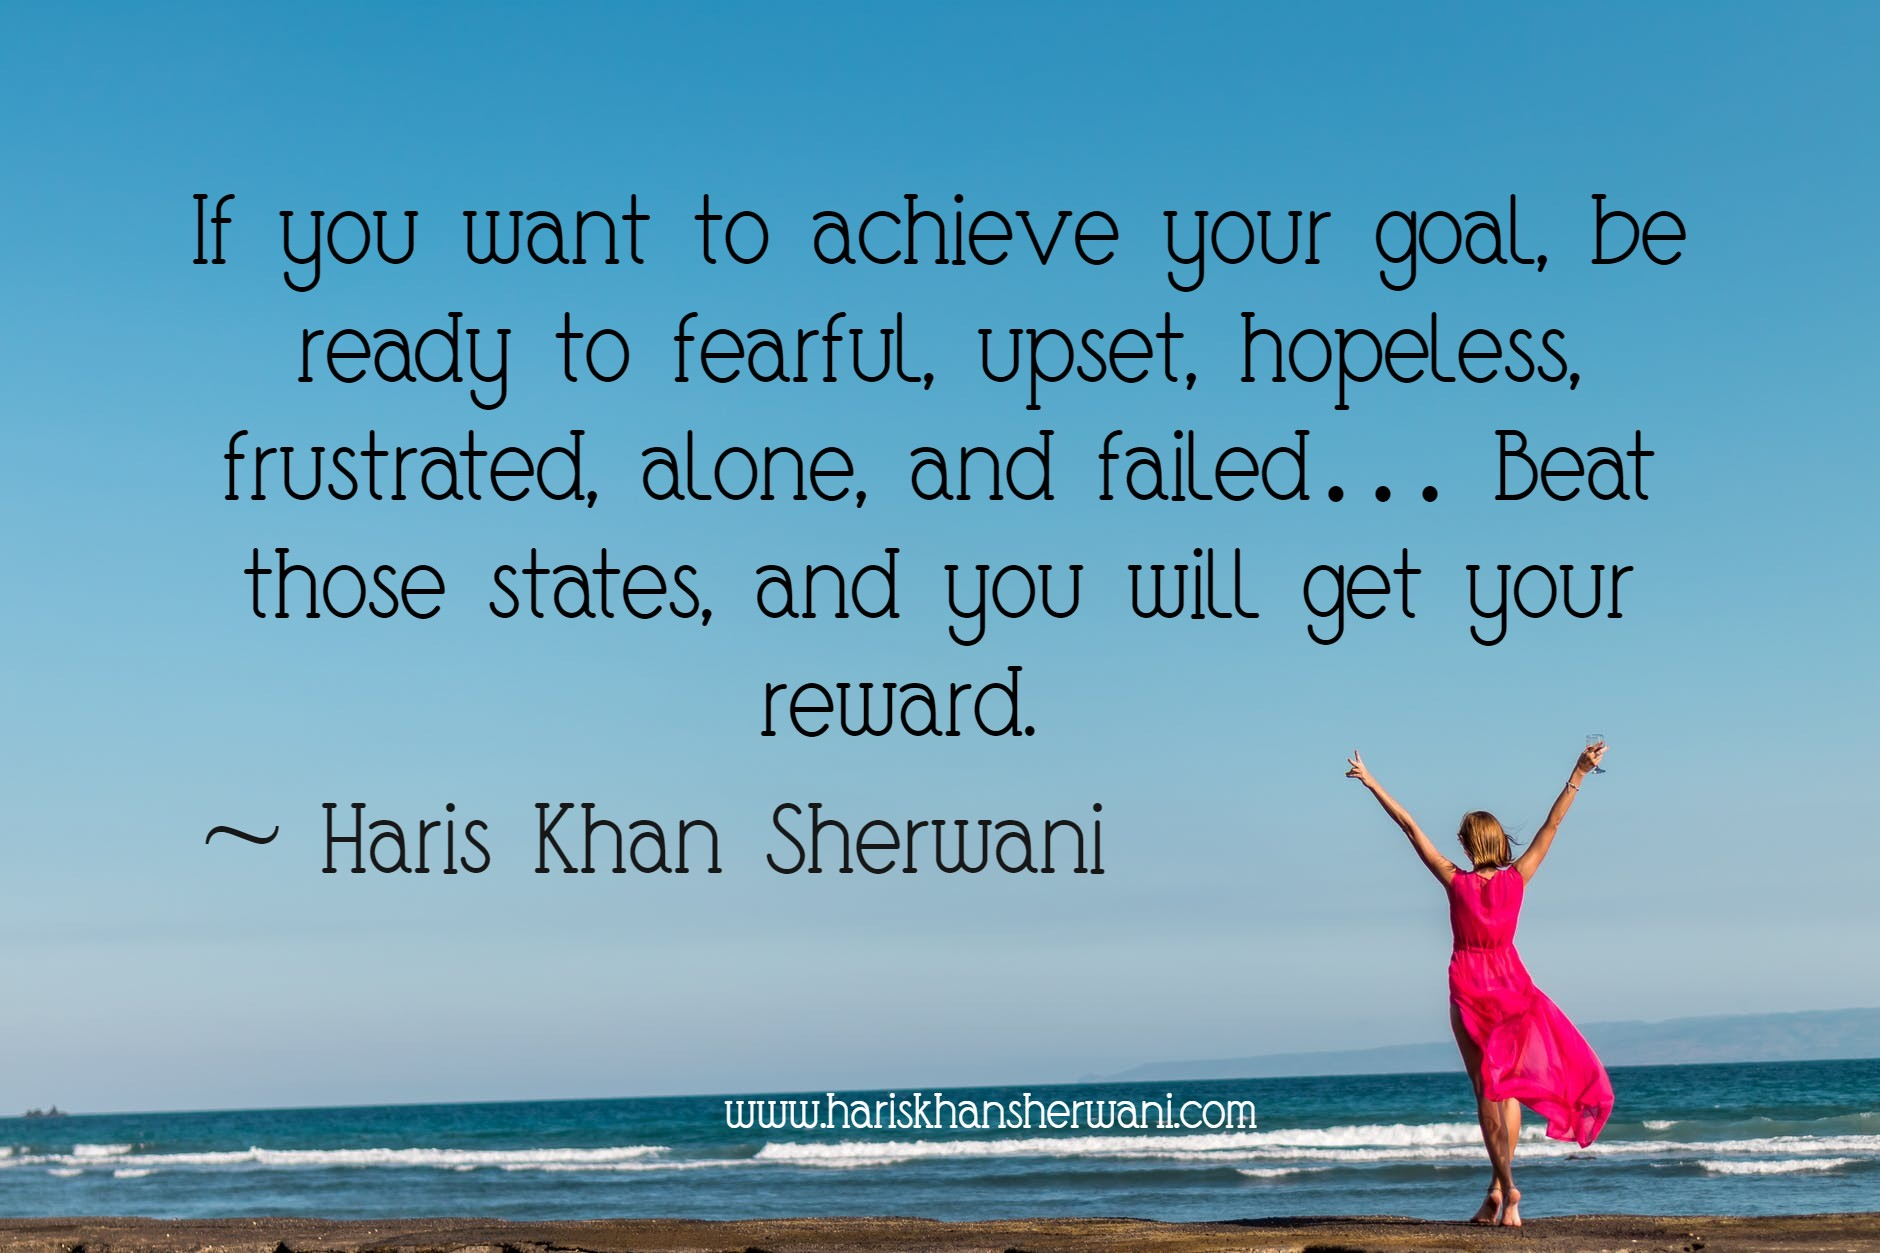 [Image] If you want to achieve your goal, be ready to fearful, upset, hopeless, frustrated, alone, and failed… Beat those states, and you will get your reward. ~ Haris Khan Sherwani [1880×1253]